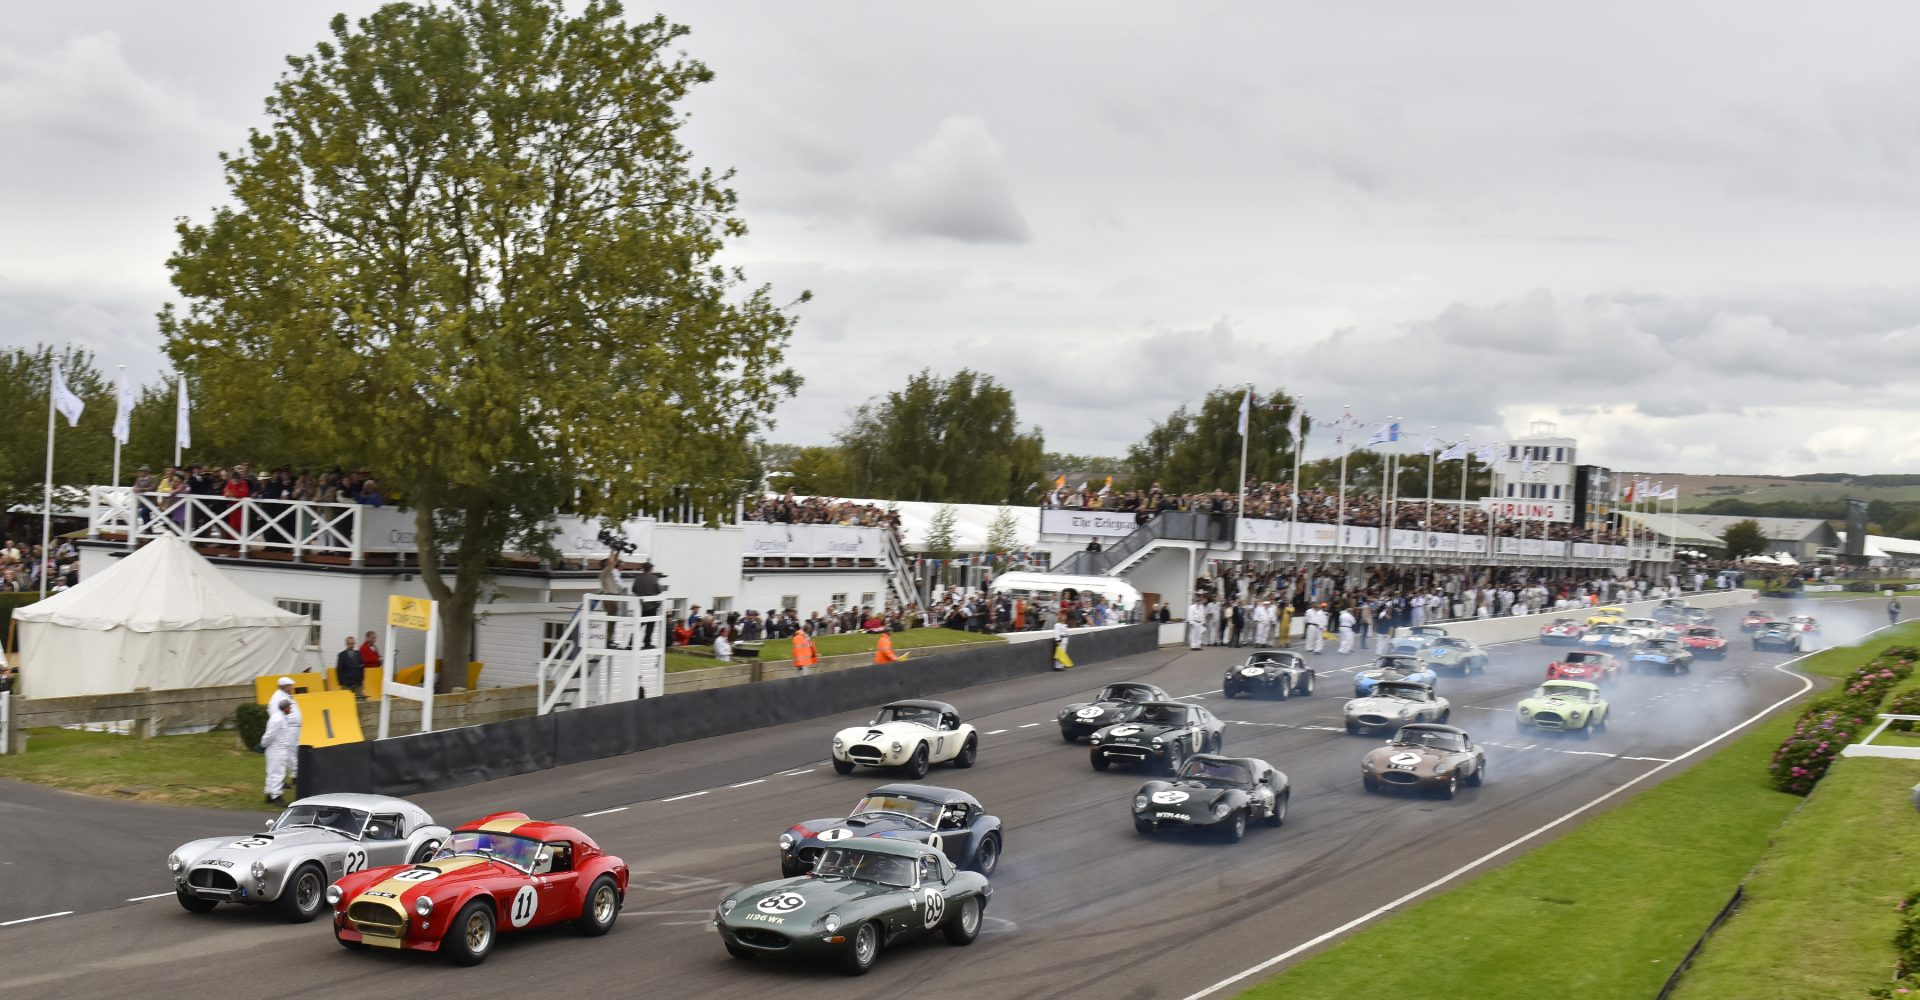 Armed robbers steal £75,000 in cash at Goodwood Revival